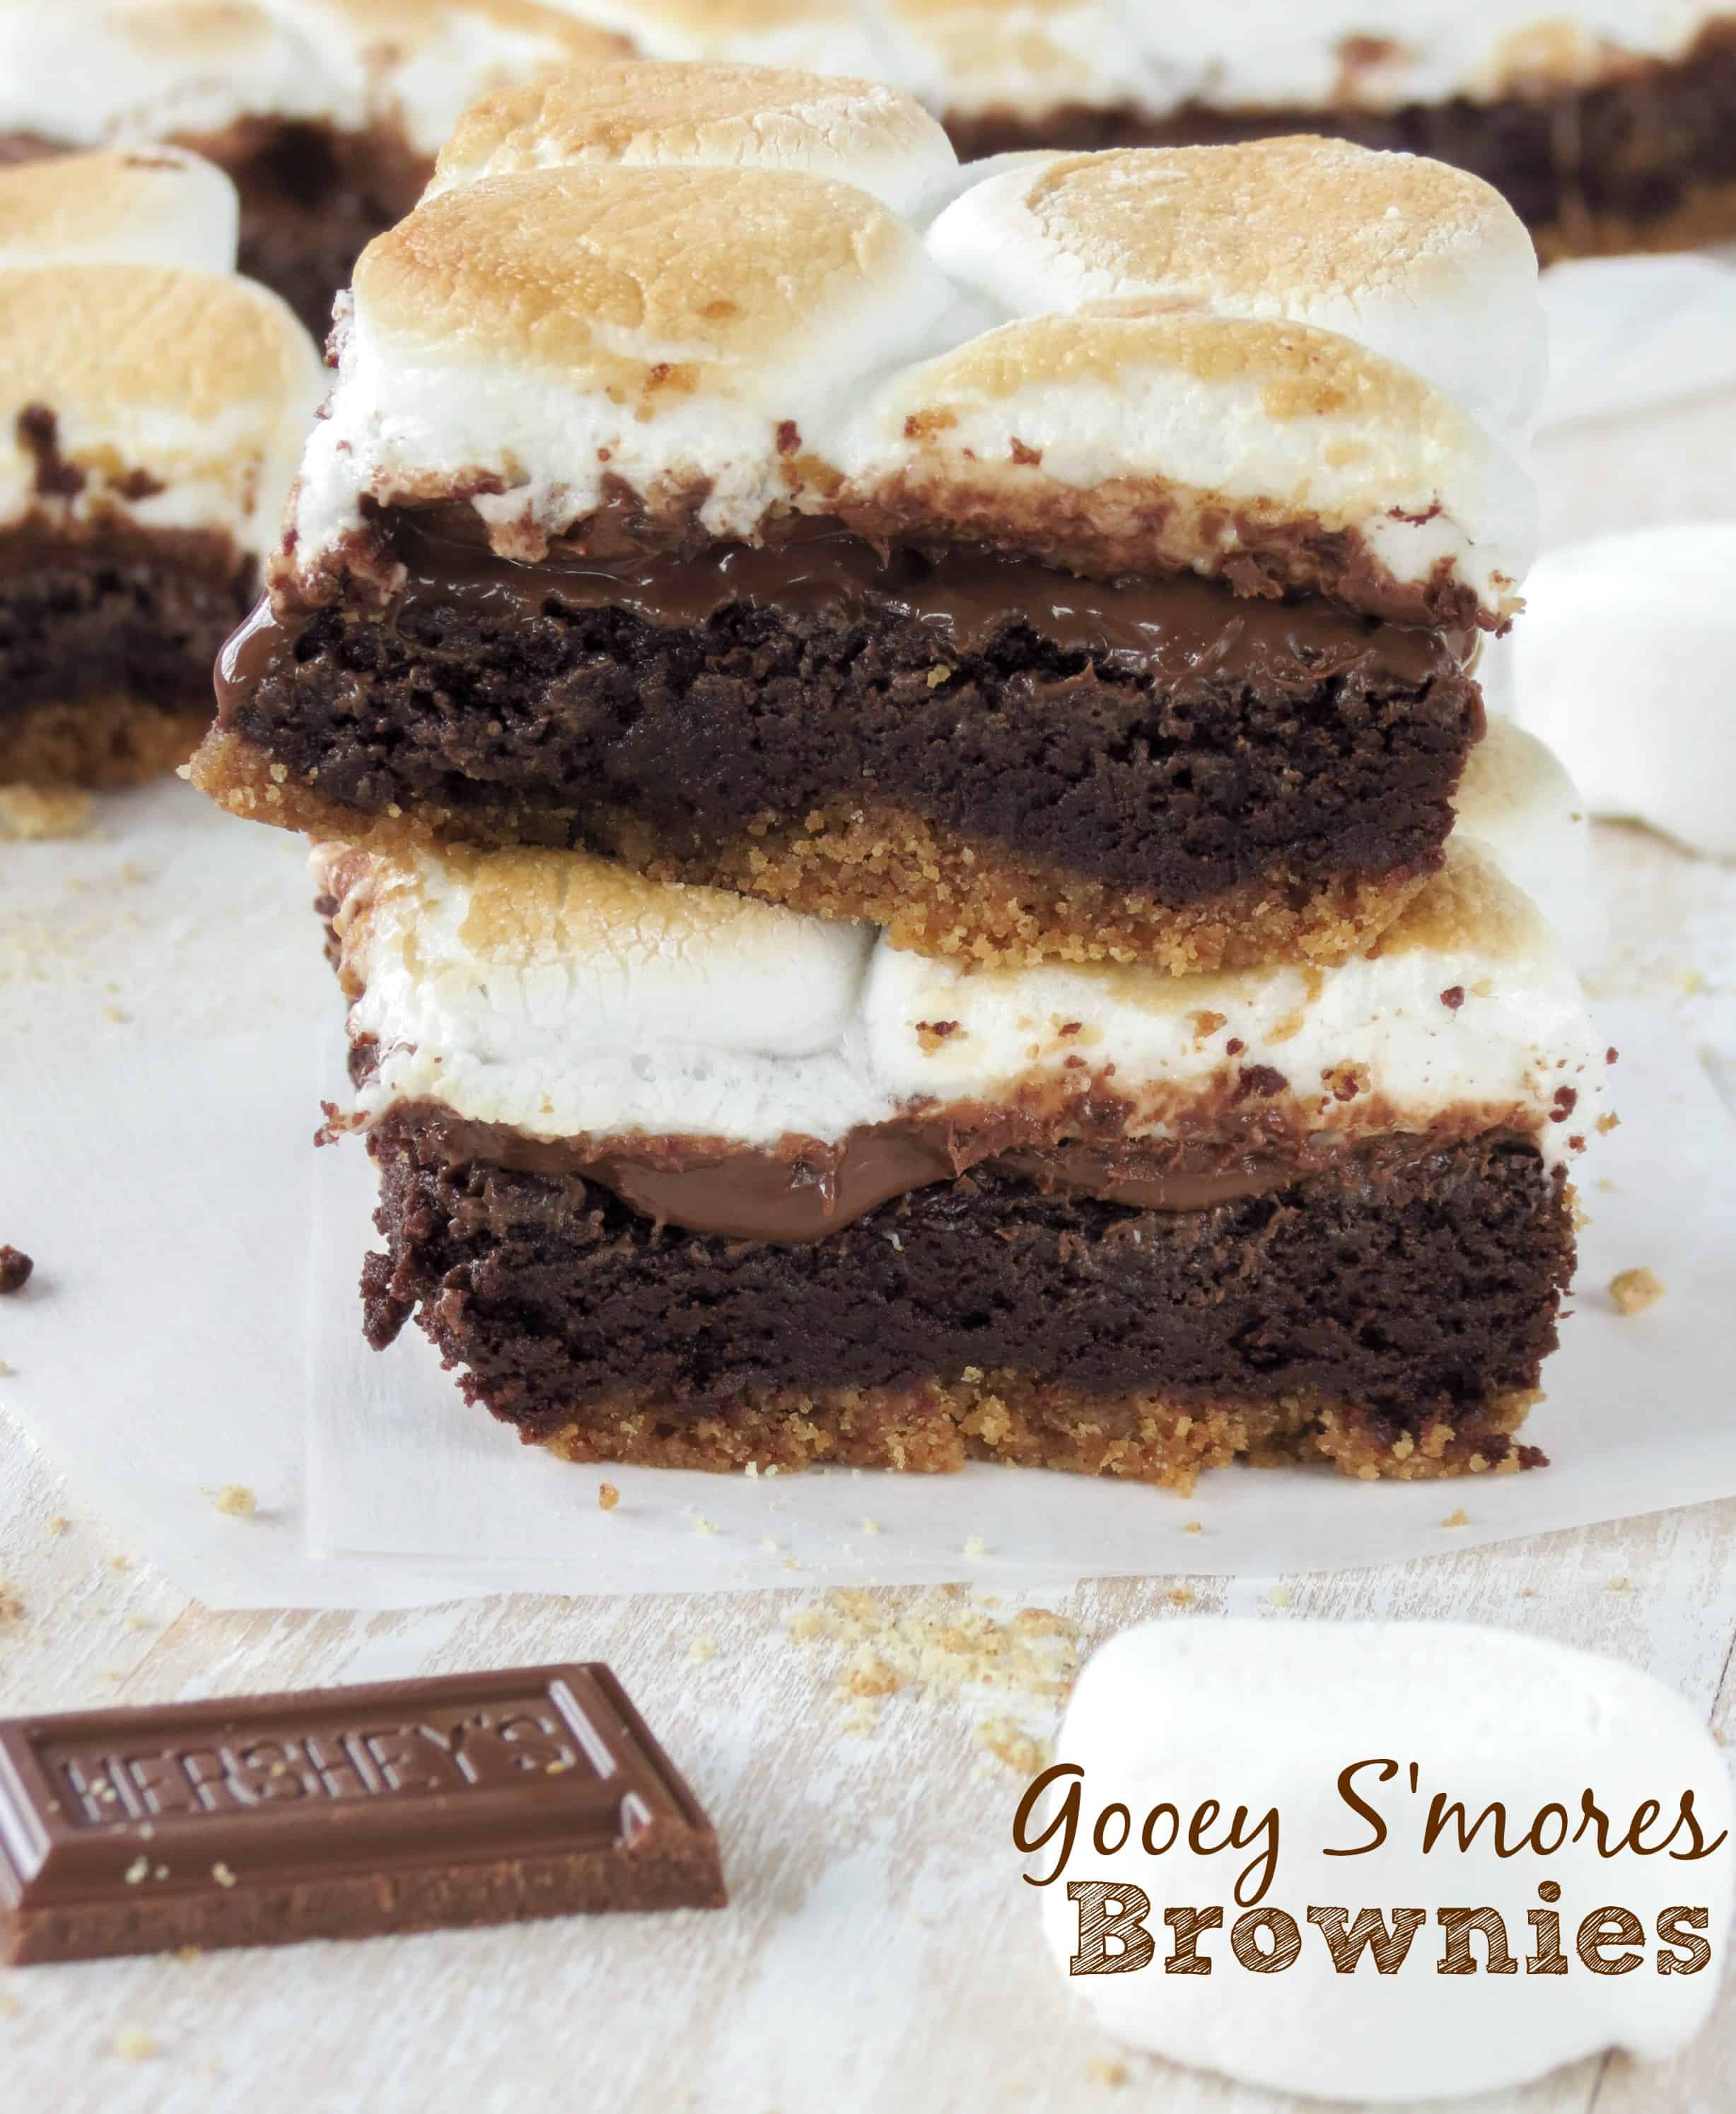 mores brownies s mores pie s mores s mores truffles s mores cookies ...